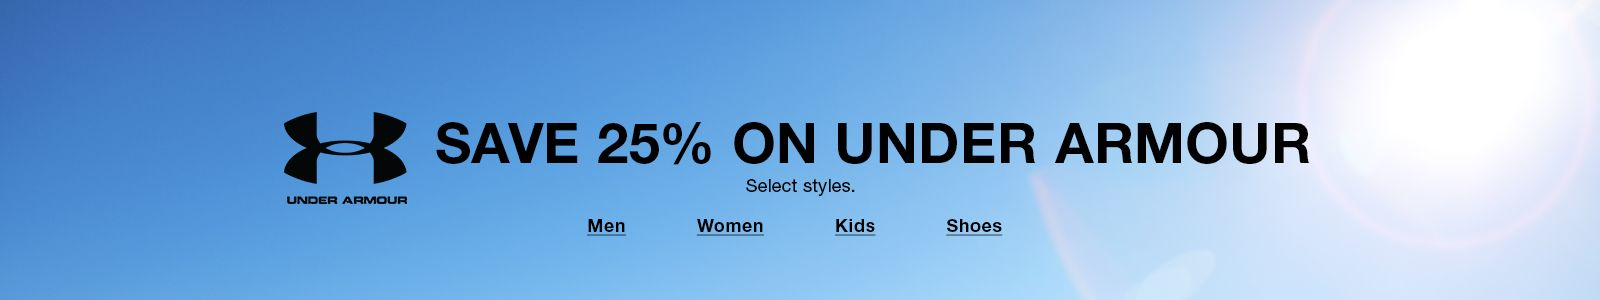 Save 25 percent on Under Armour, Select styles, Men, Women, Kids, Shoes